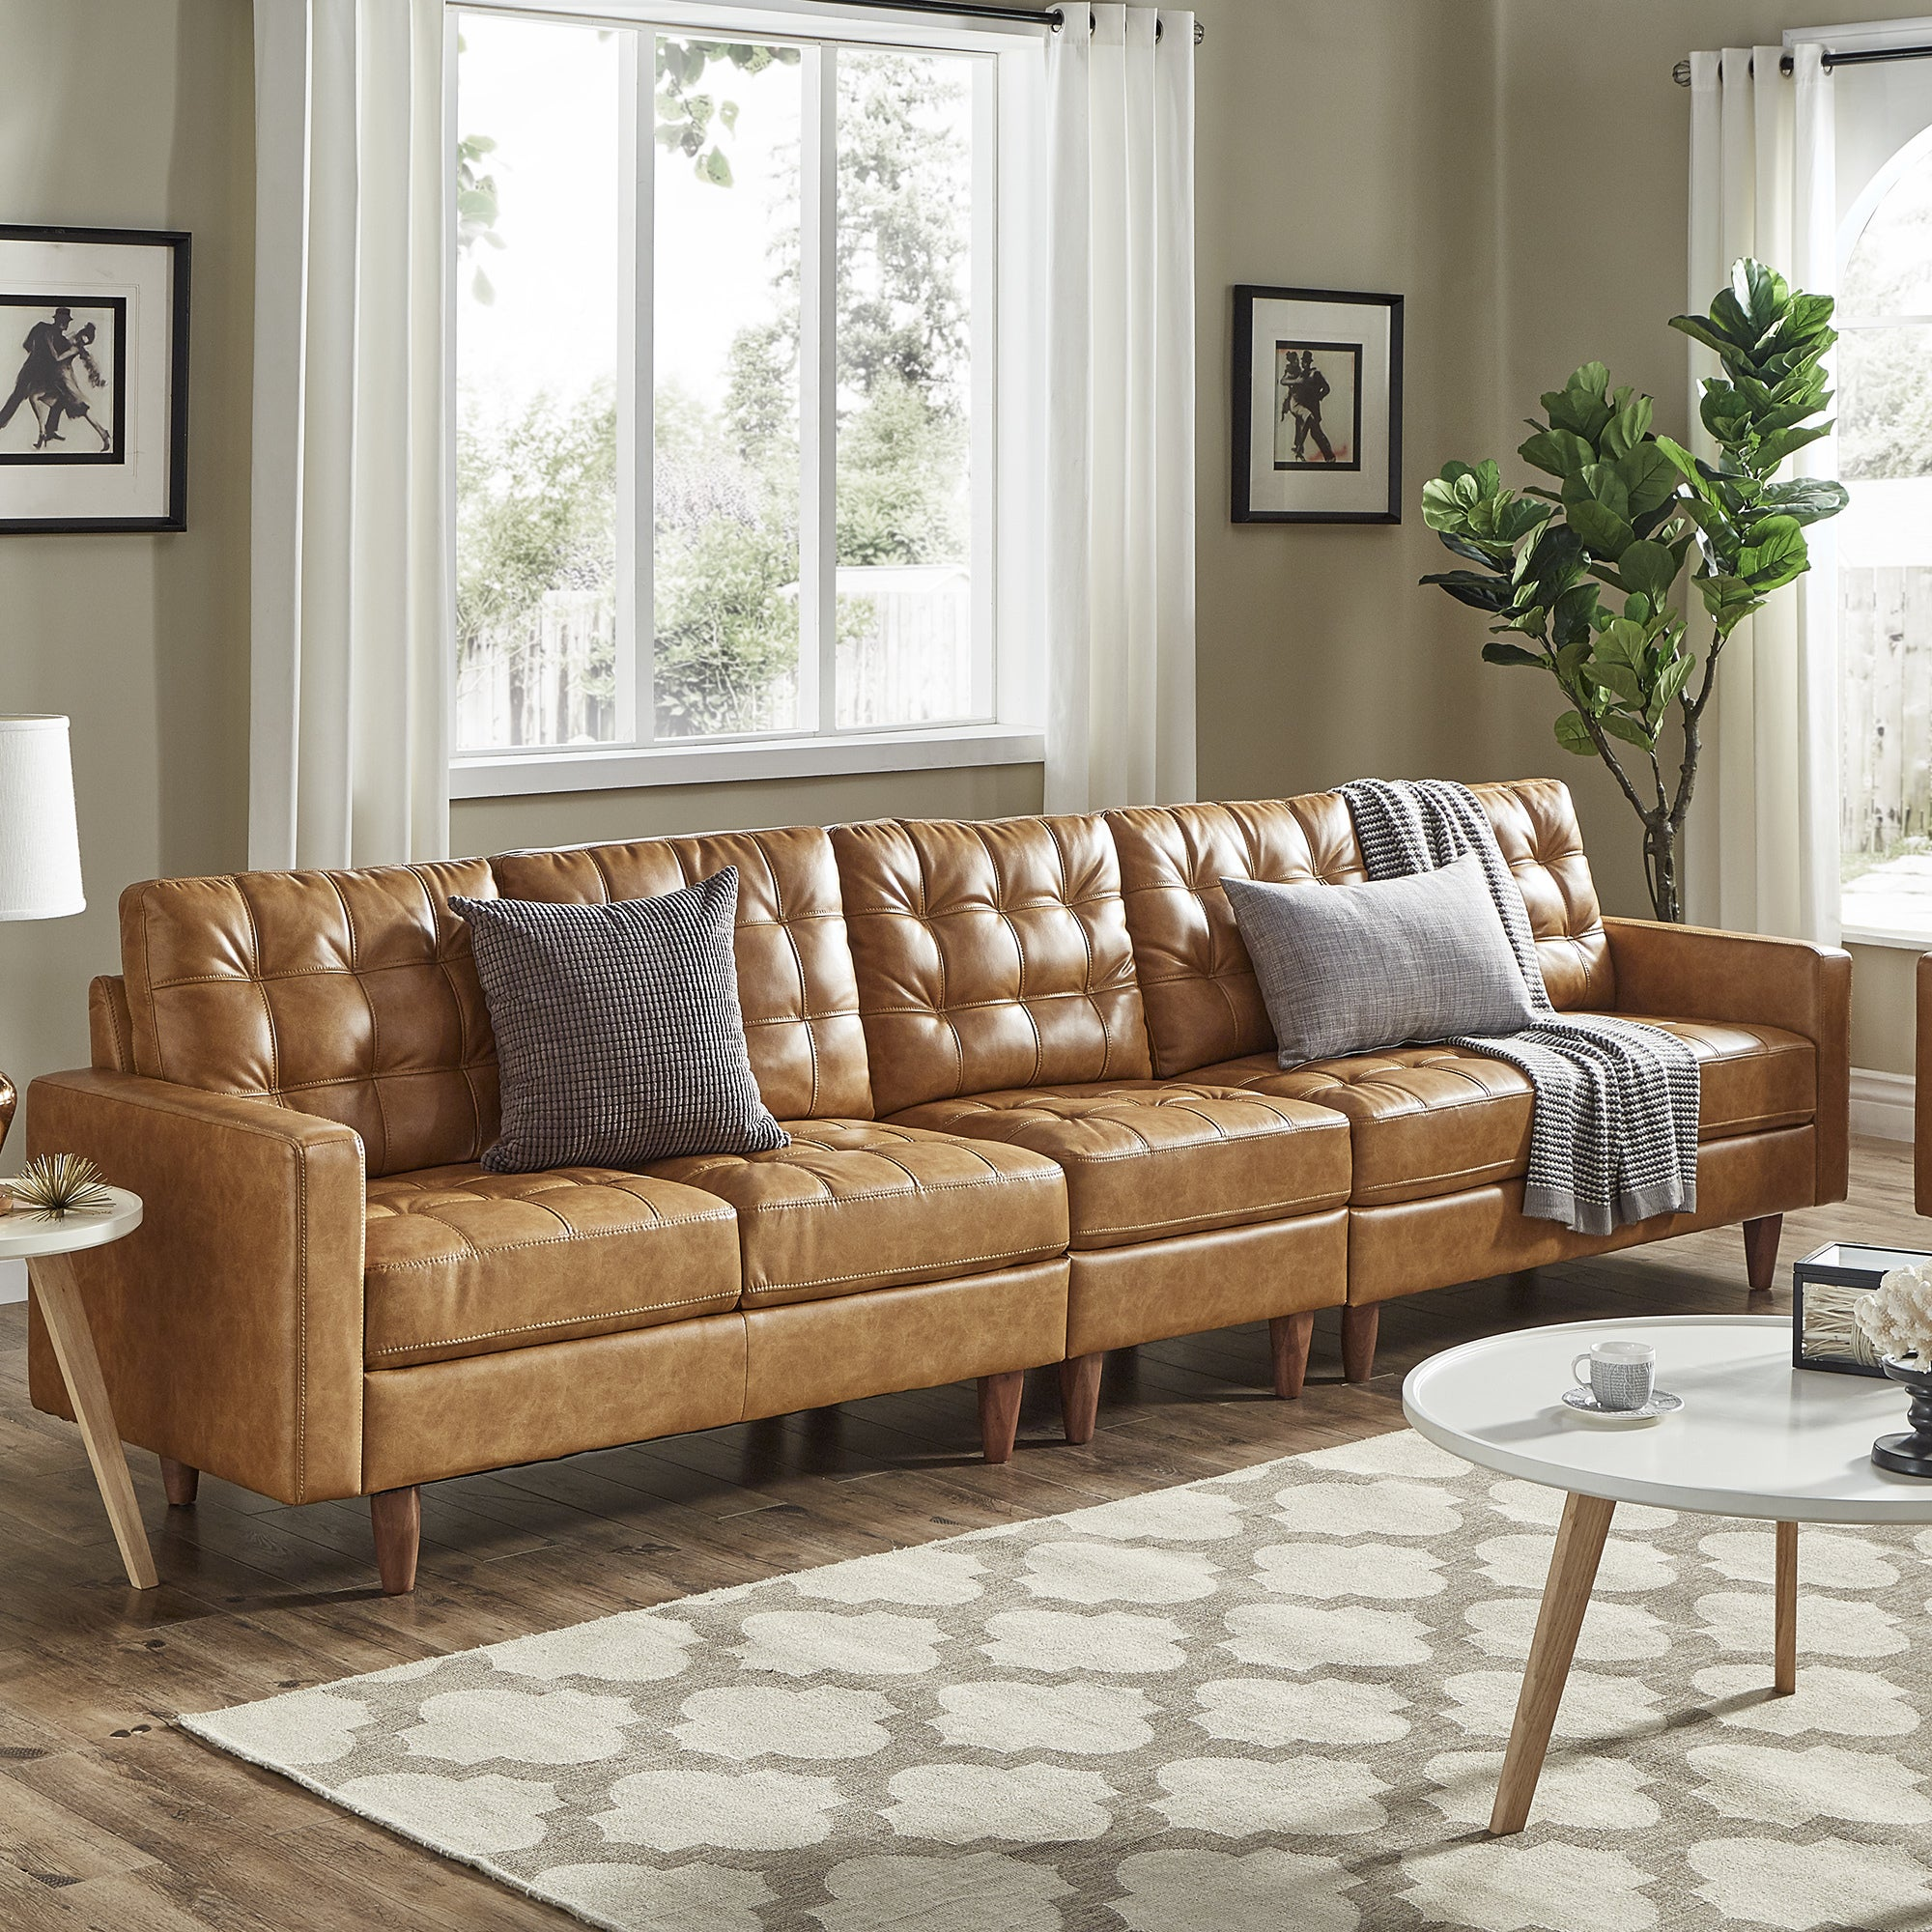 Odin Caramel Leather Gel Extra Long Sofas by iNSPIRE Q Modern - Free  Shipping Today - Overstock.com - 25686938